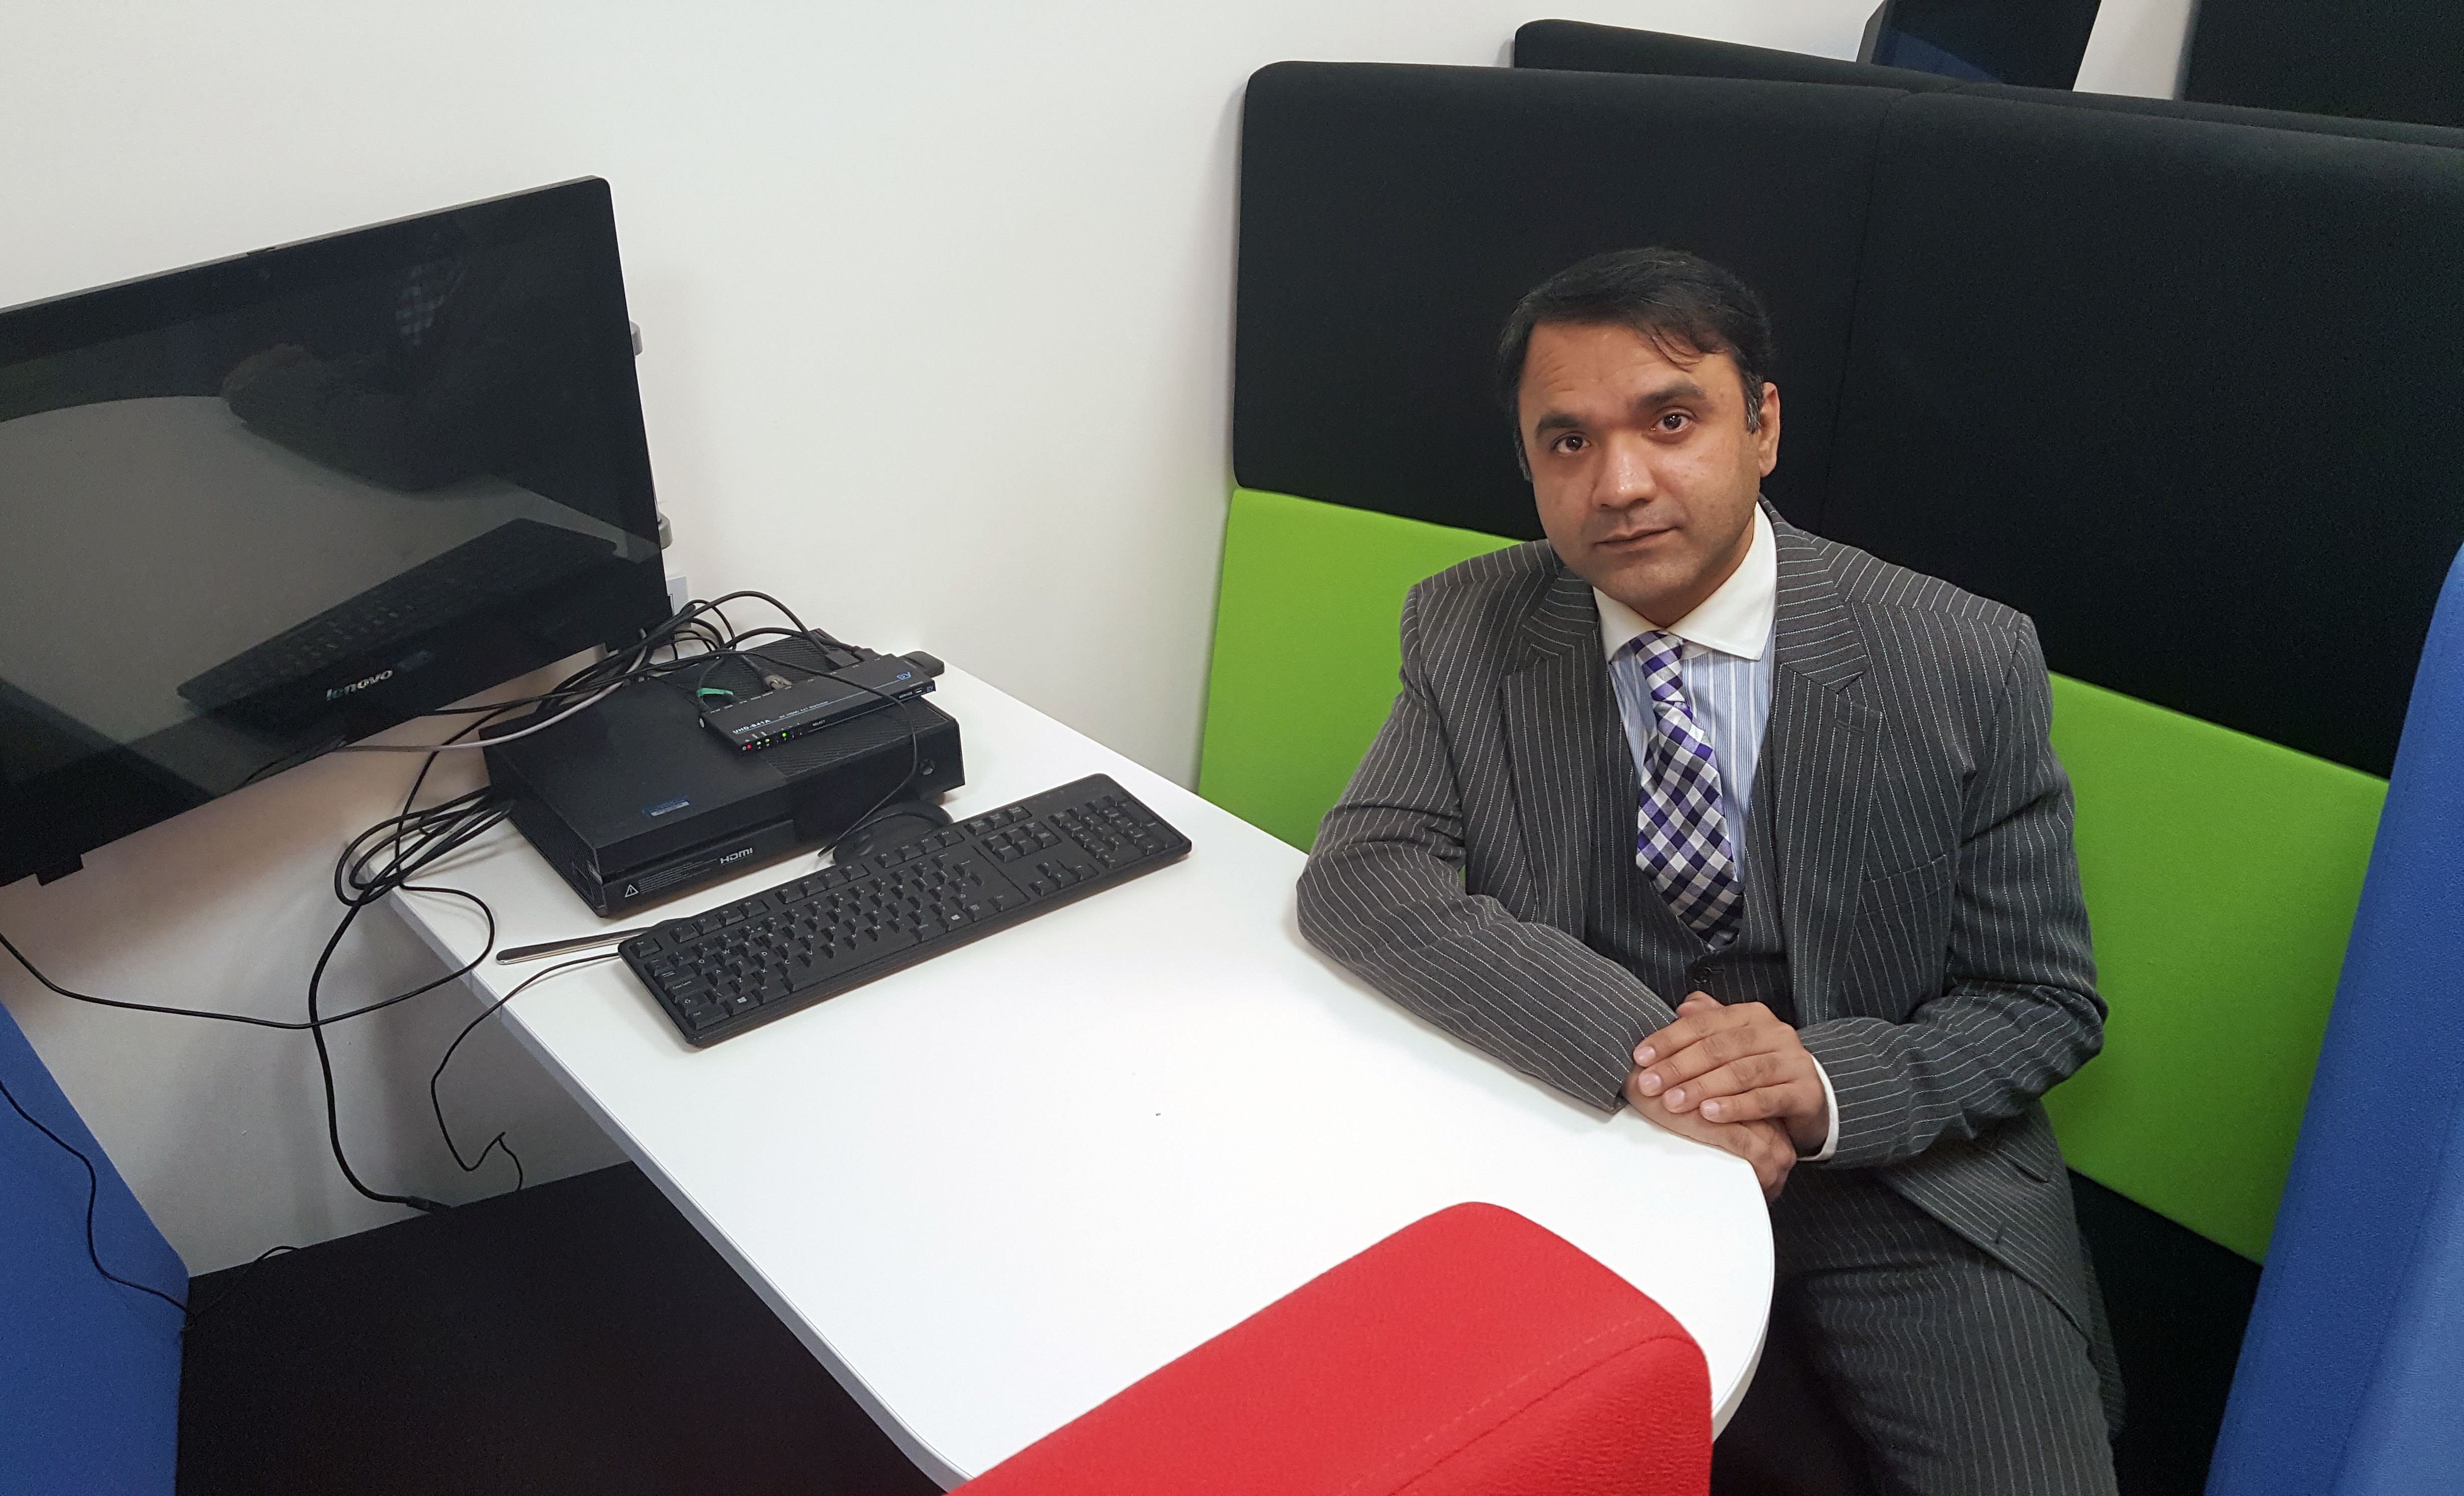 Syed Shah, Head of information security